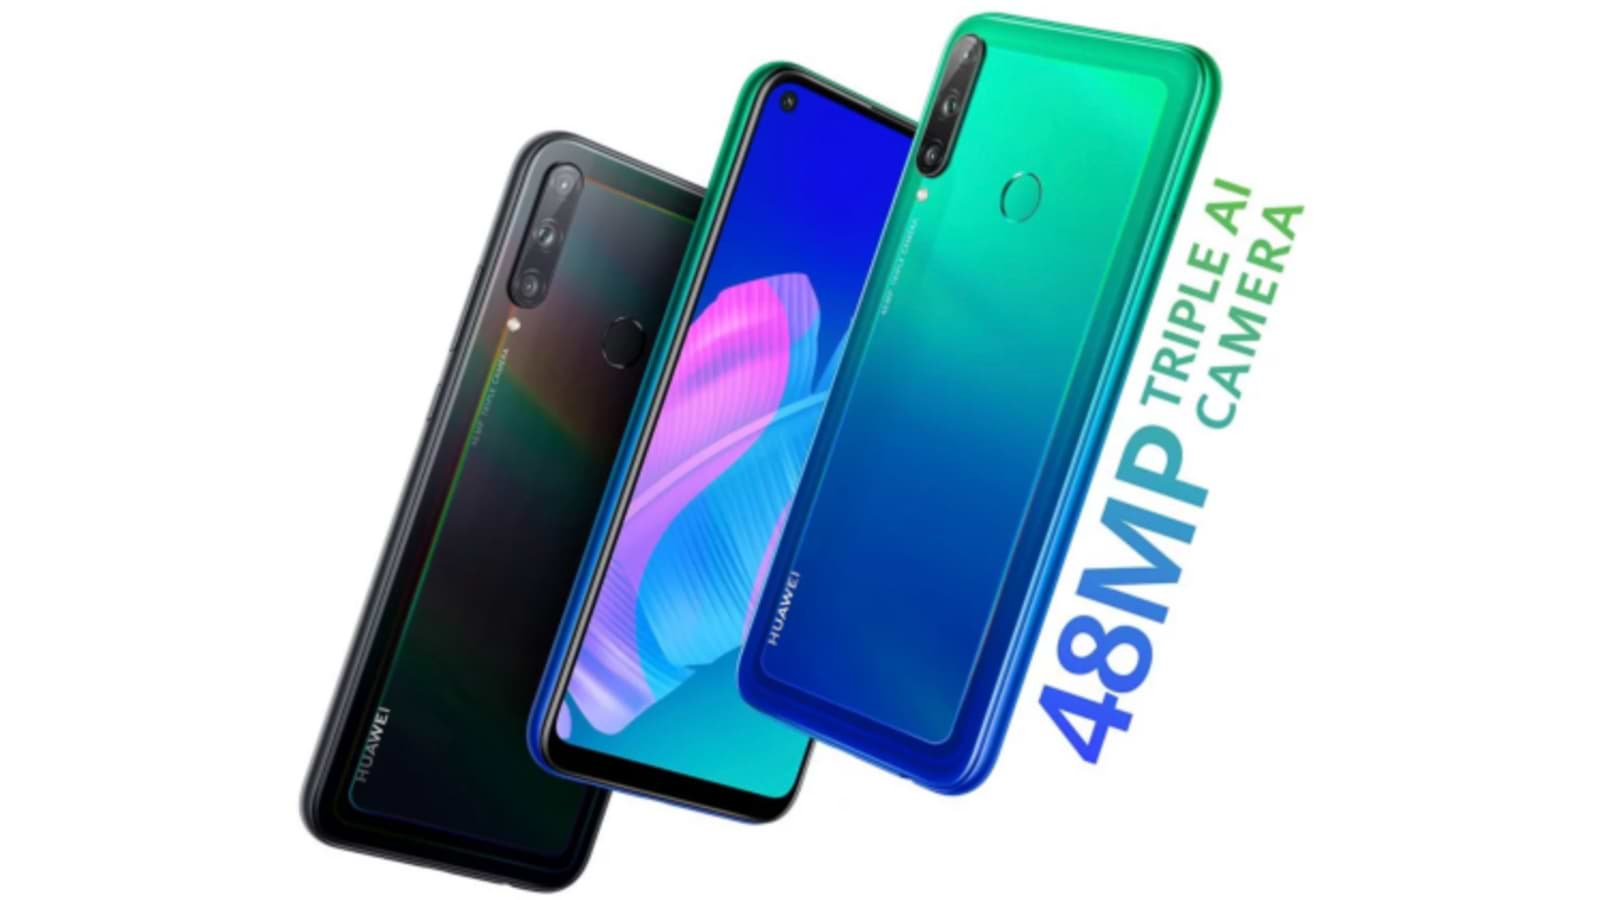 Huawei Y7p Introduced with Perforated Screen and 48MP Main Camera